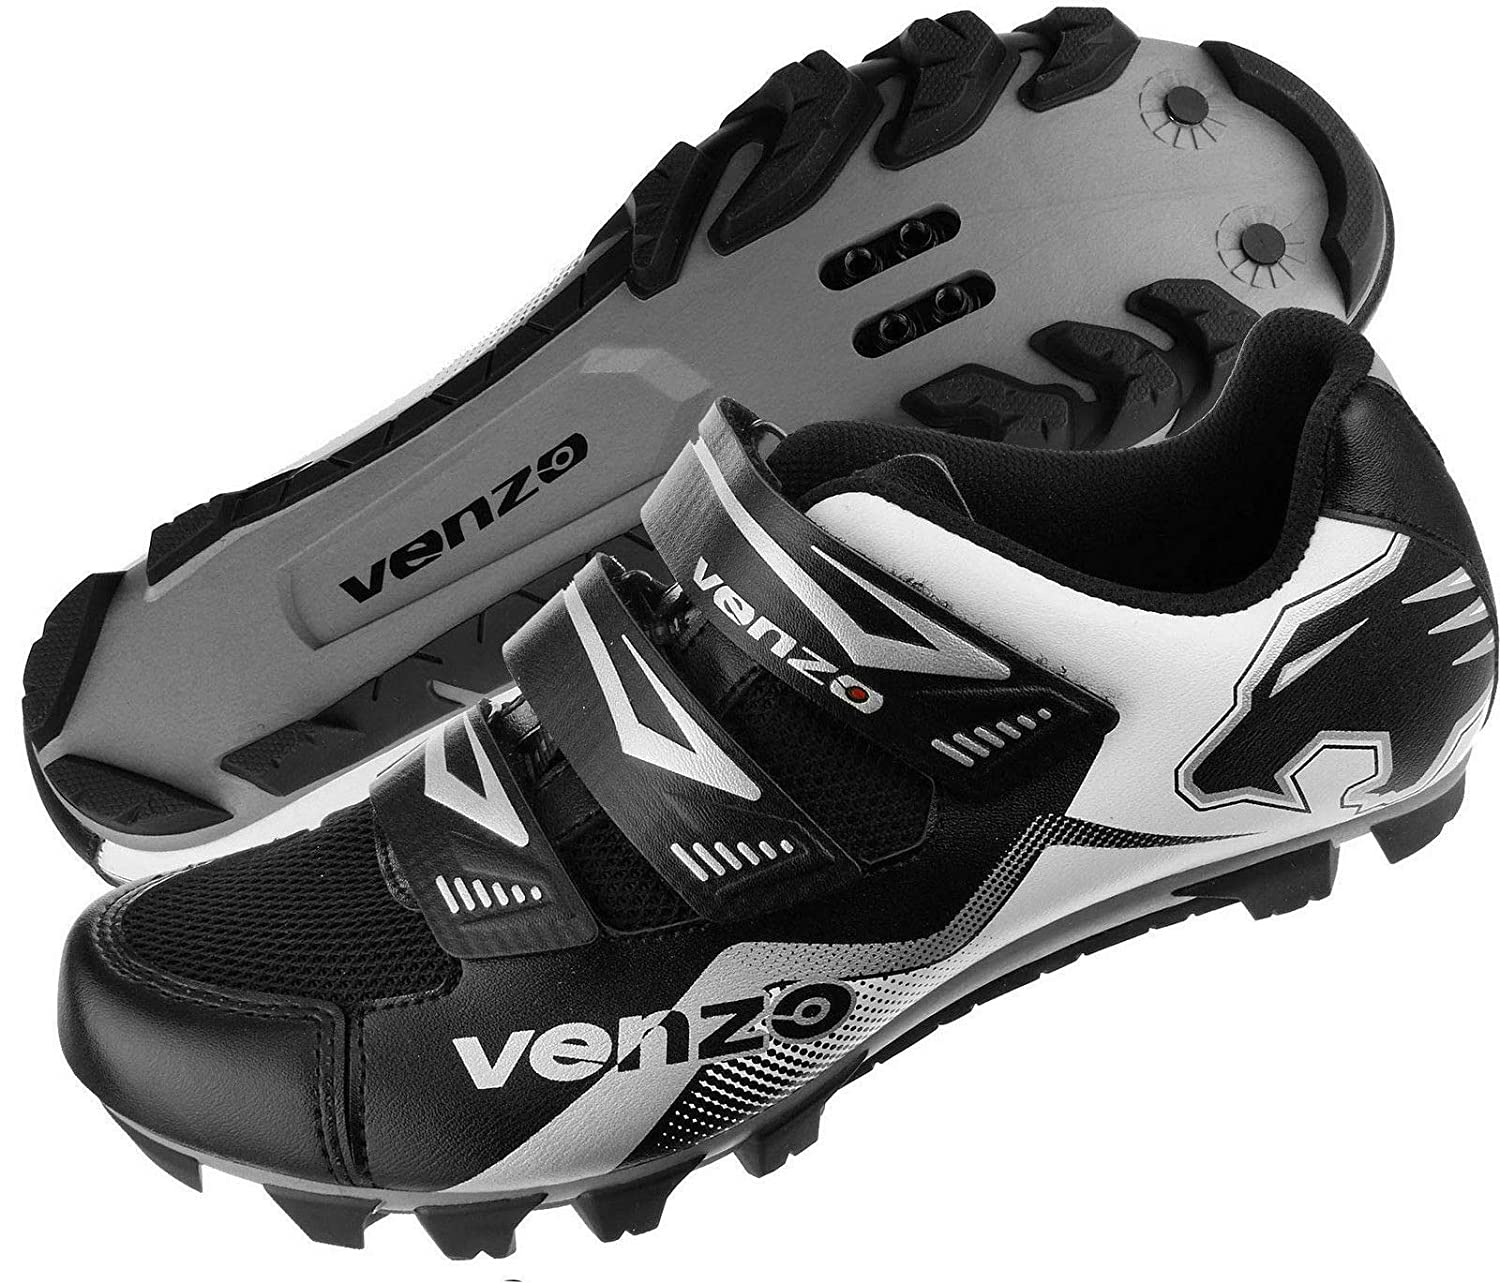 Venzo Mountain Bike Bicycle Cycling Compatible with Shimano SPD Shoes Multi-Use Pedals